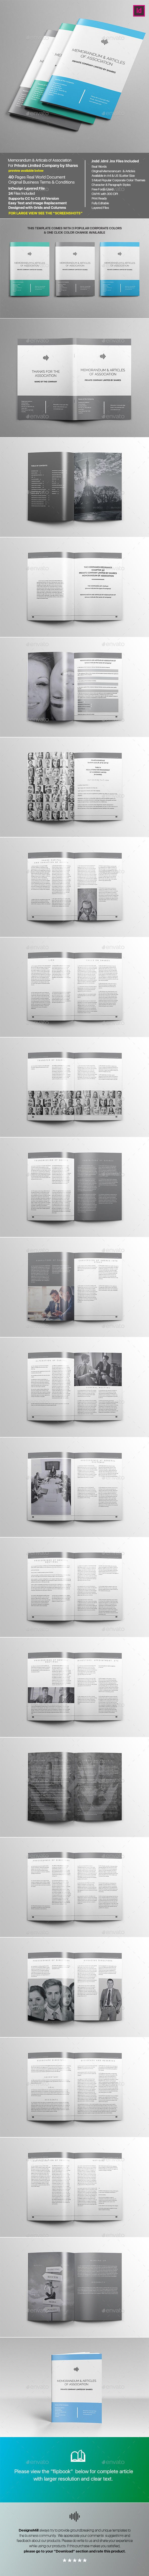 Business Setup Proposal — InDesign INDD #egotype #us letter • Available here → https://graphicriver.net/item/business-setup-proposal/13388453?ref=pxcr